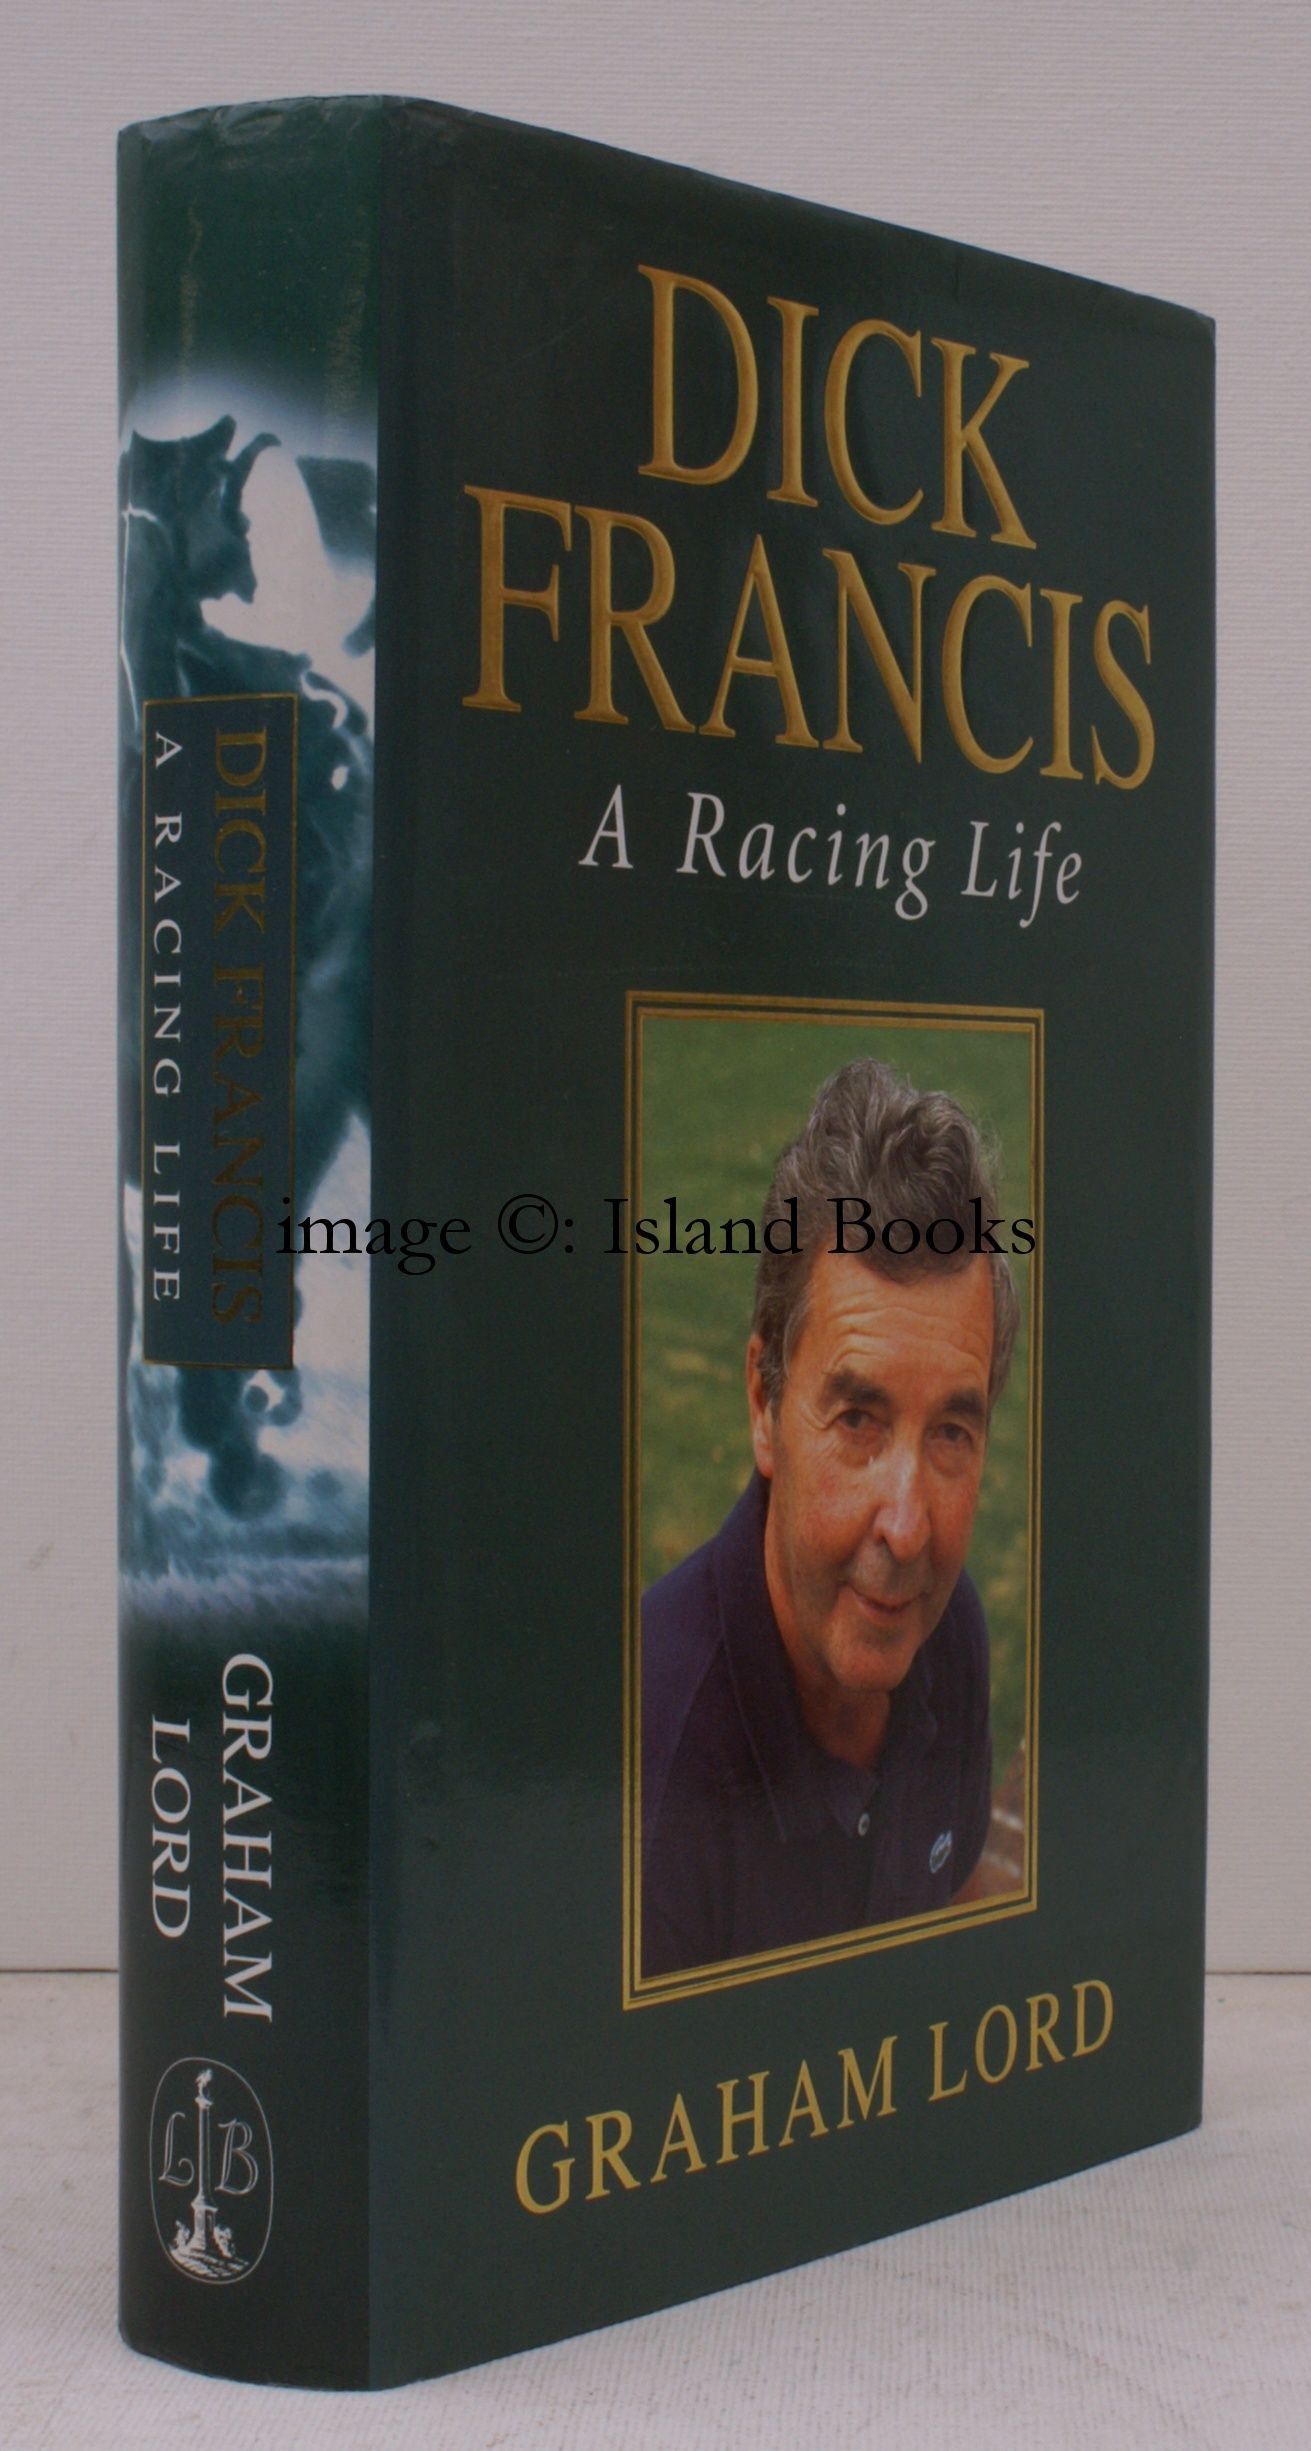 Little noises Dick francis racing